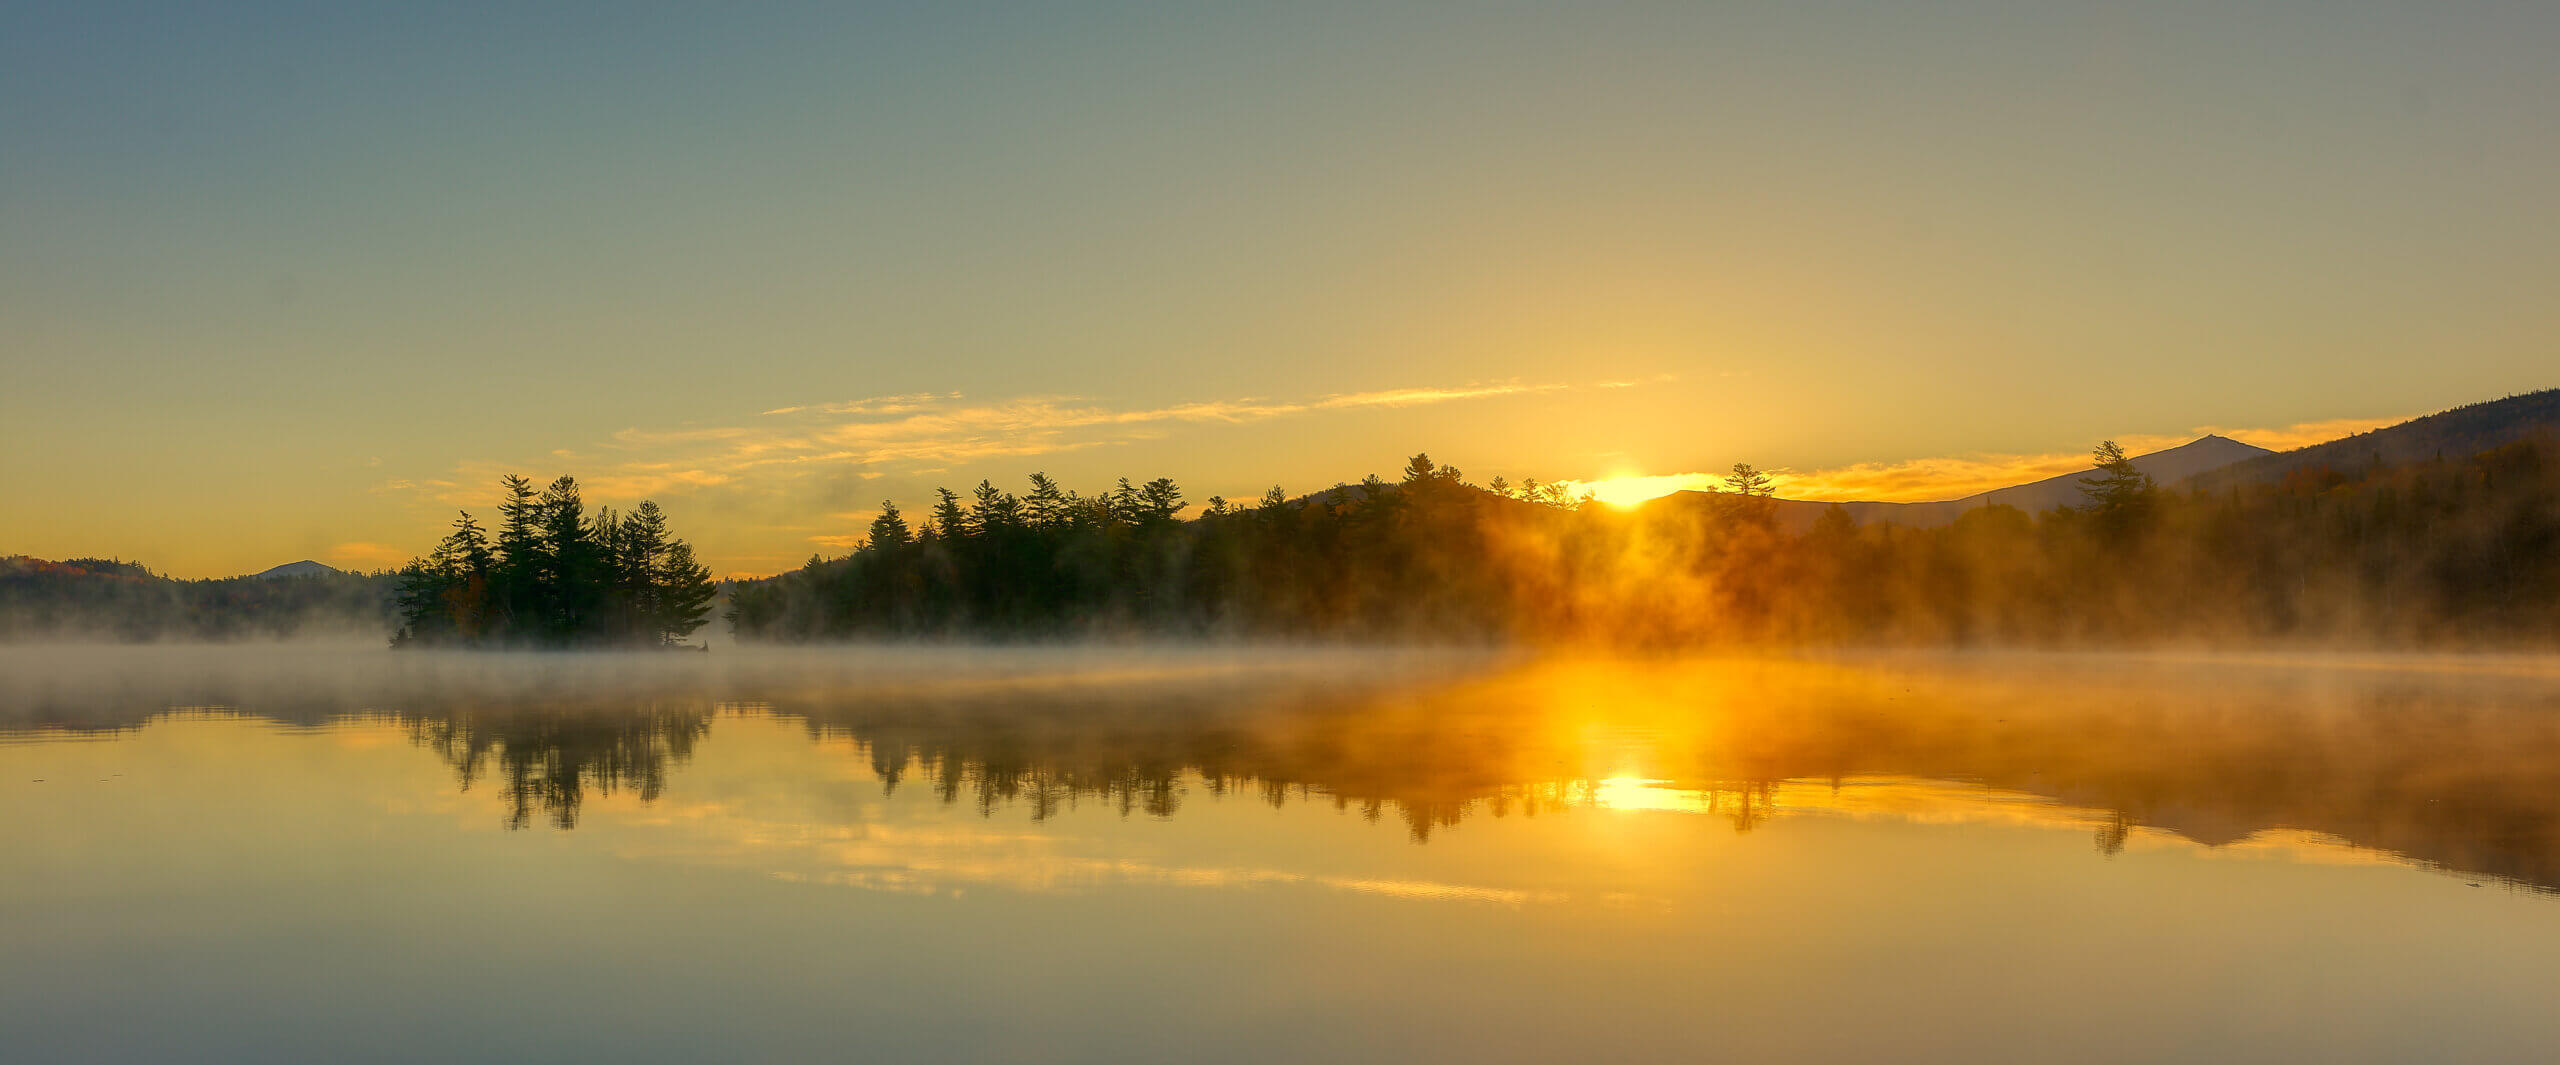 Lake Placid New York Sunrise